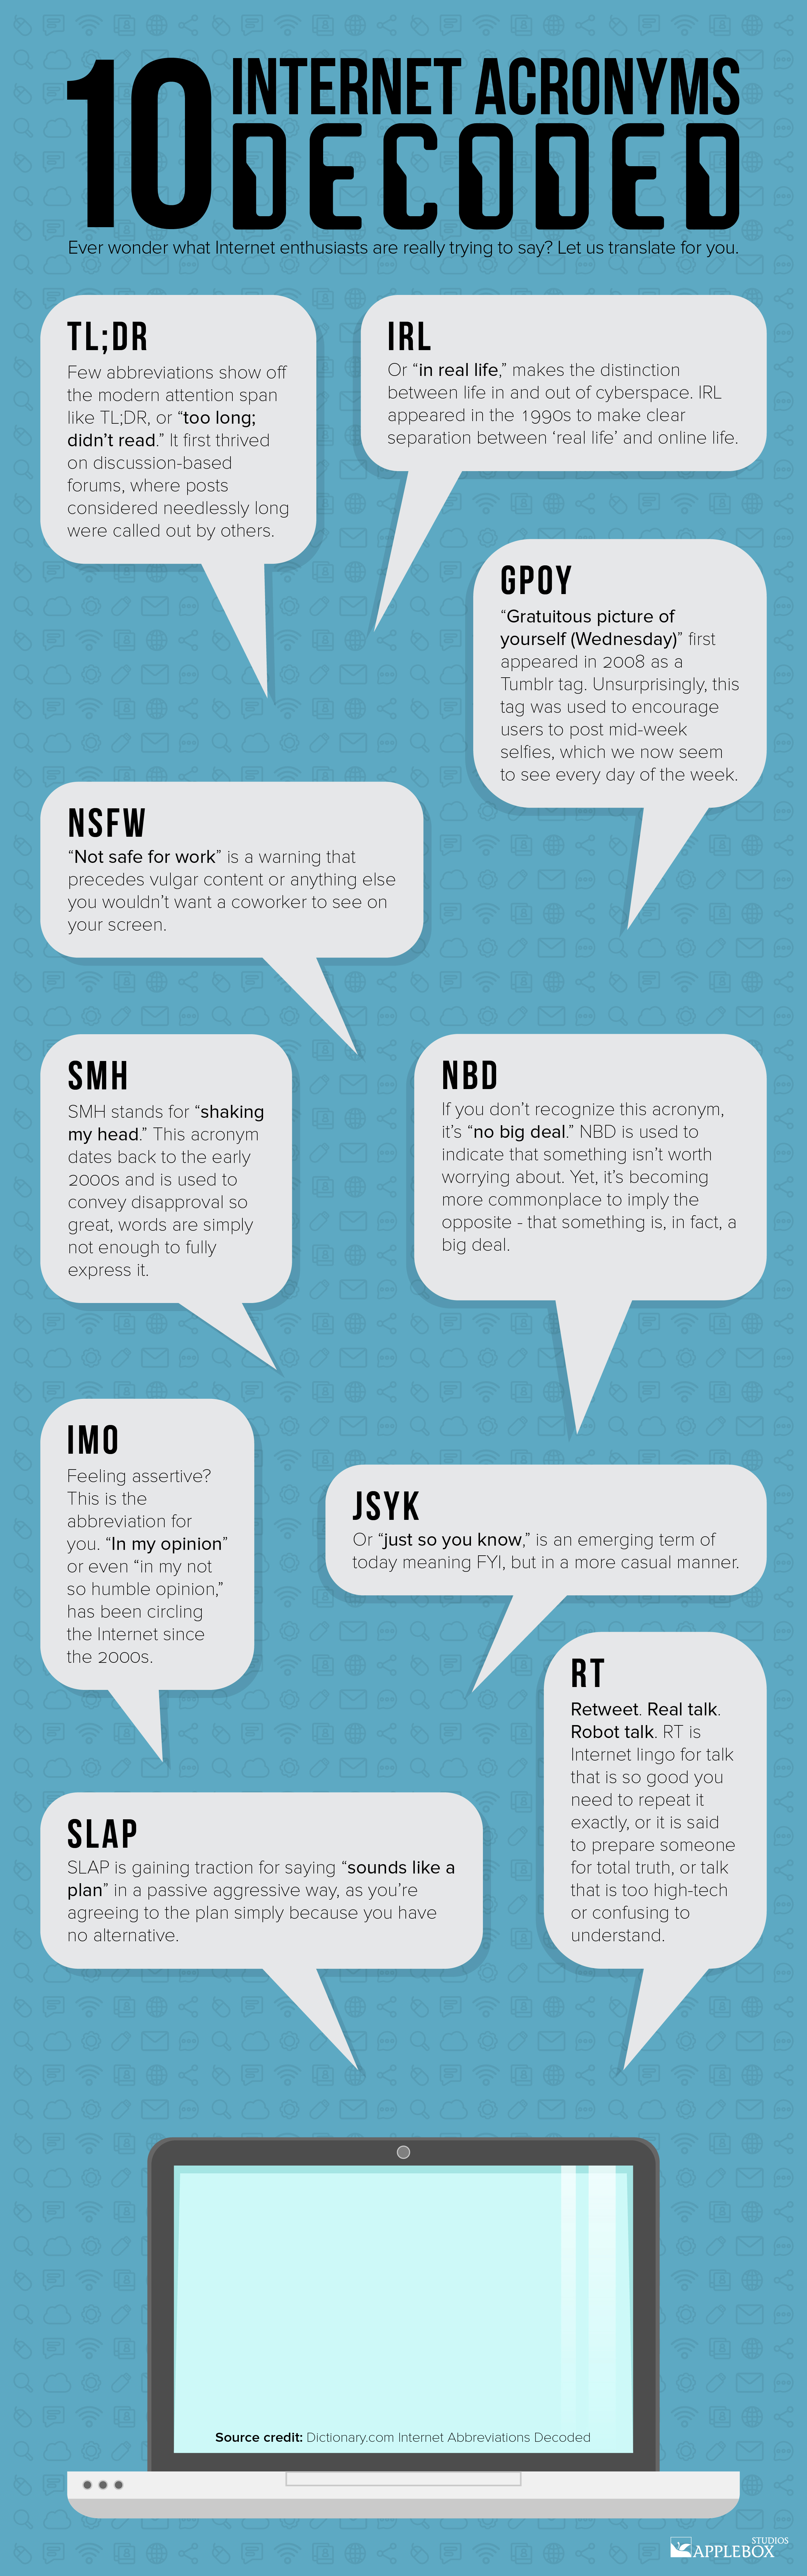 10 Internet Acronyms Decoded